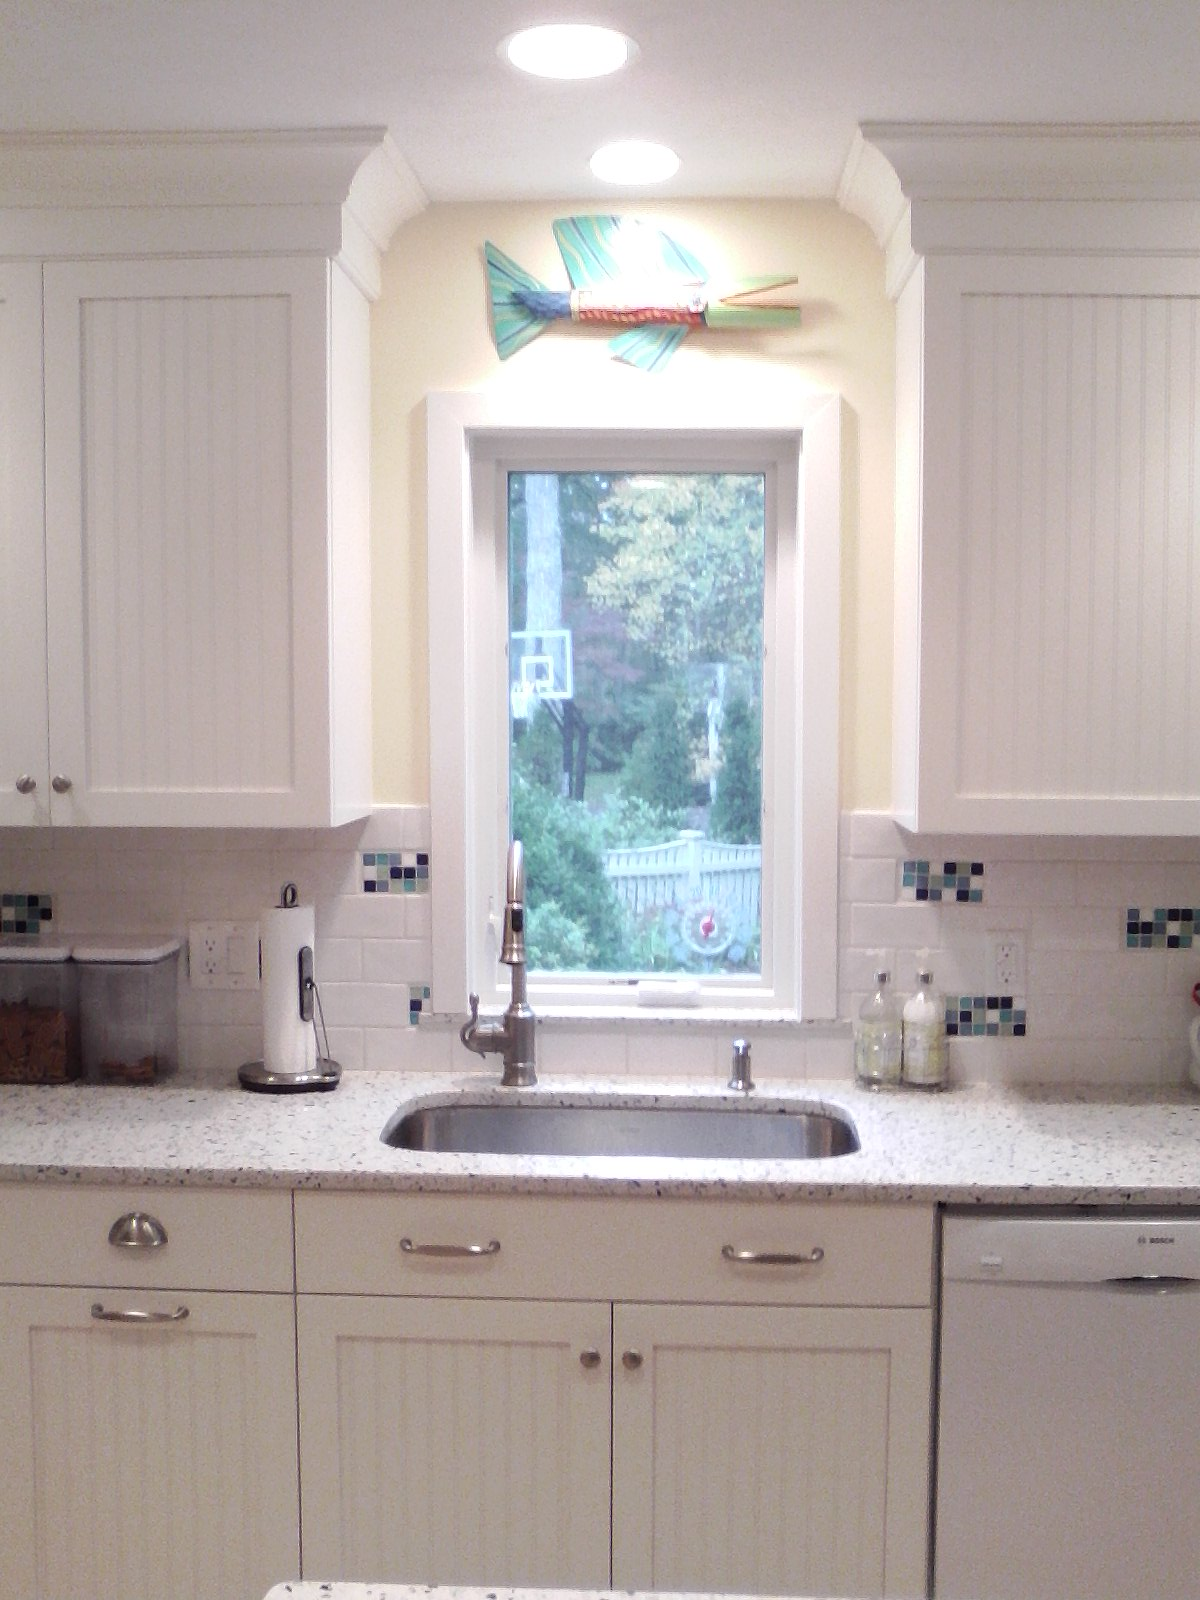 AFTER: A SMALLER WINDOW CREATES PRIVACY AND ADDS MORE WALL CABINETS